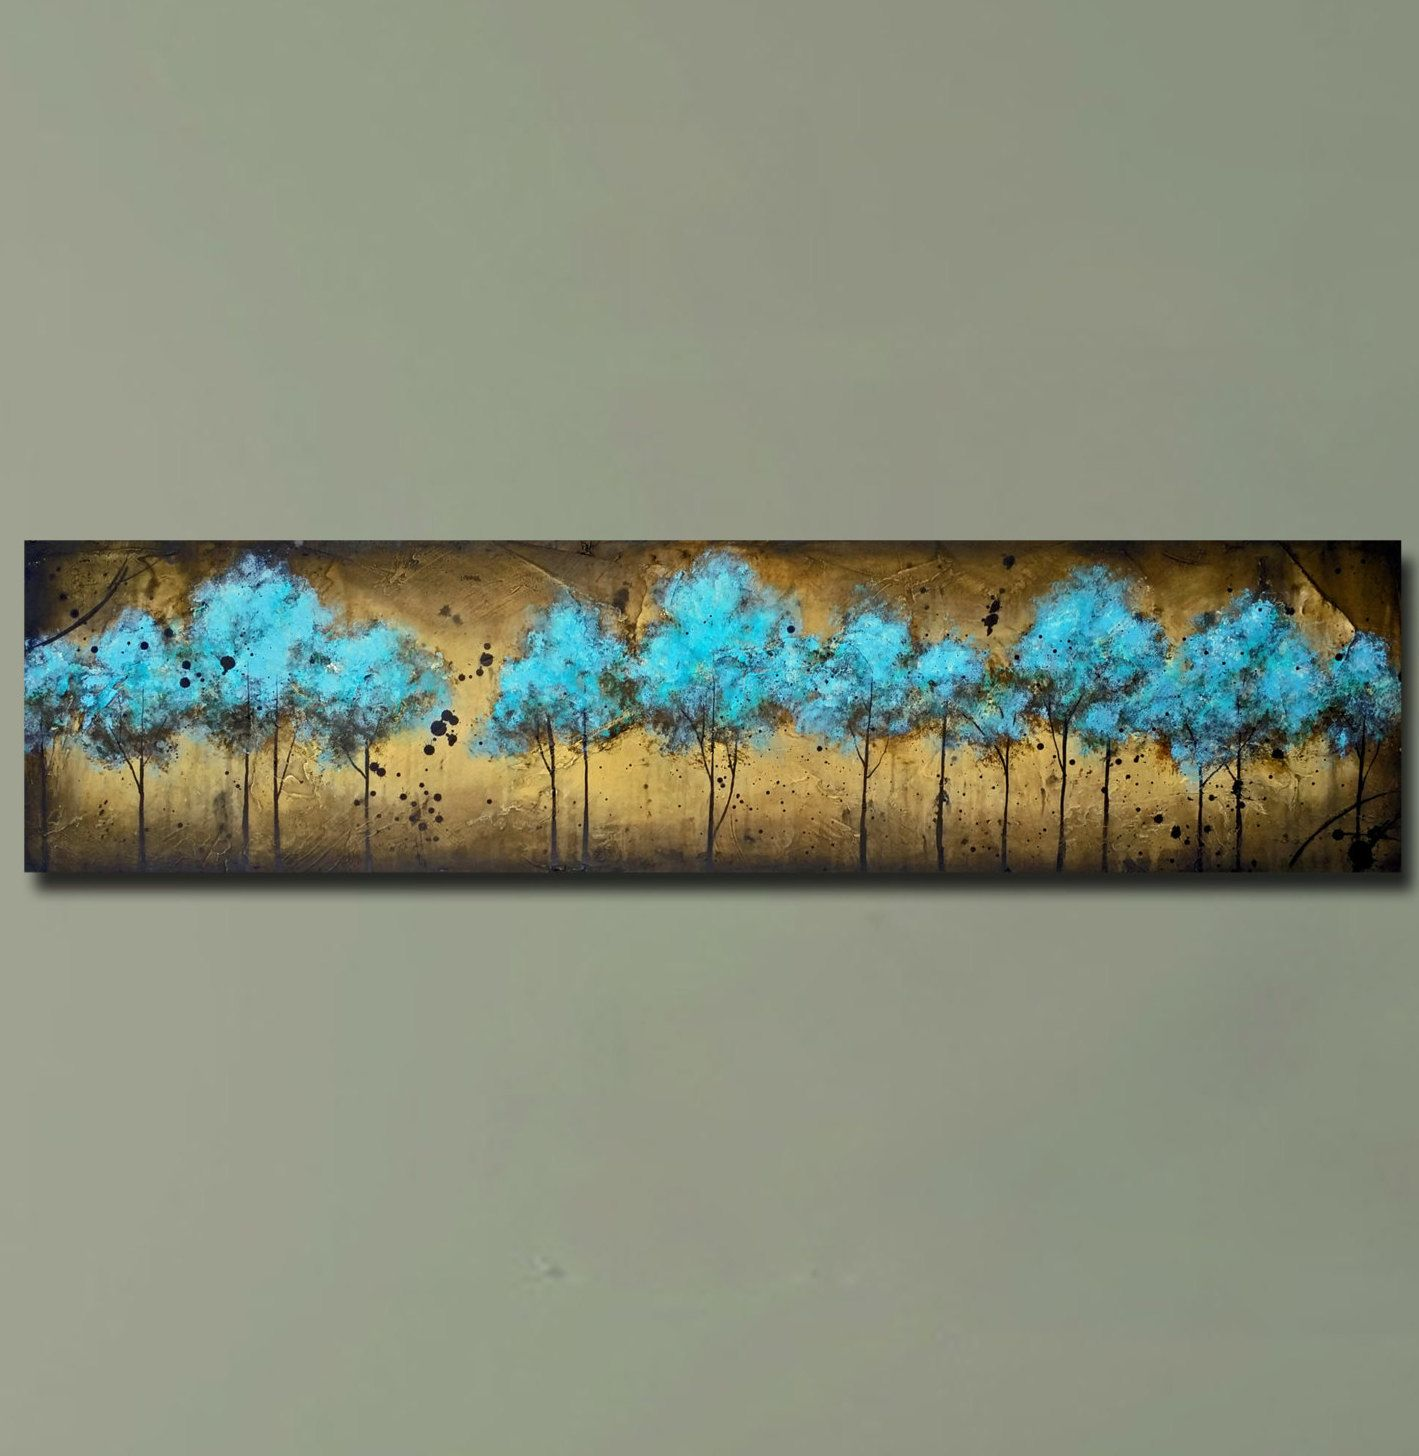 Sofa Art Long Horizontal Blue Tree Painting Textured Painting Into The Forest 12x48 By Britt Hallowell Horizontal Painting Tree Painting Blue Tree